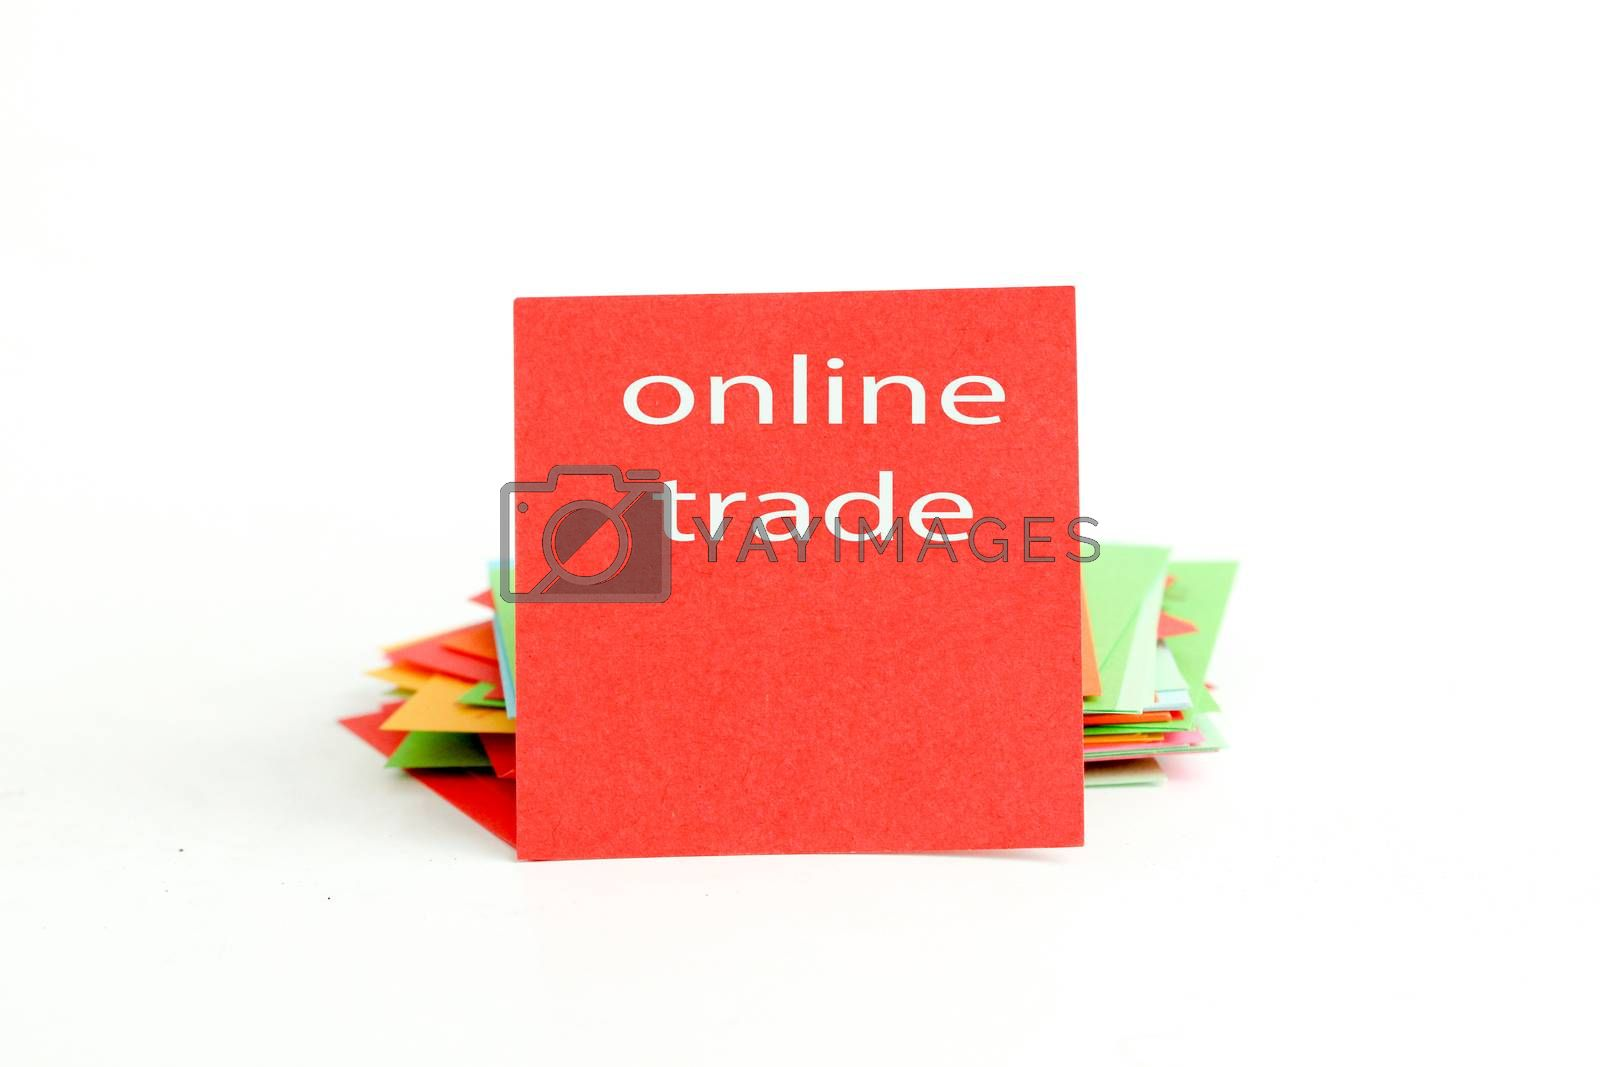 picture of a red note paper with text online trade